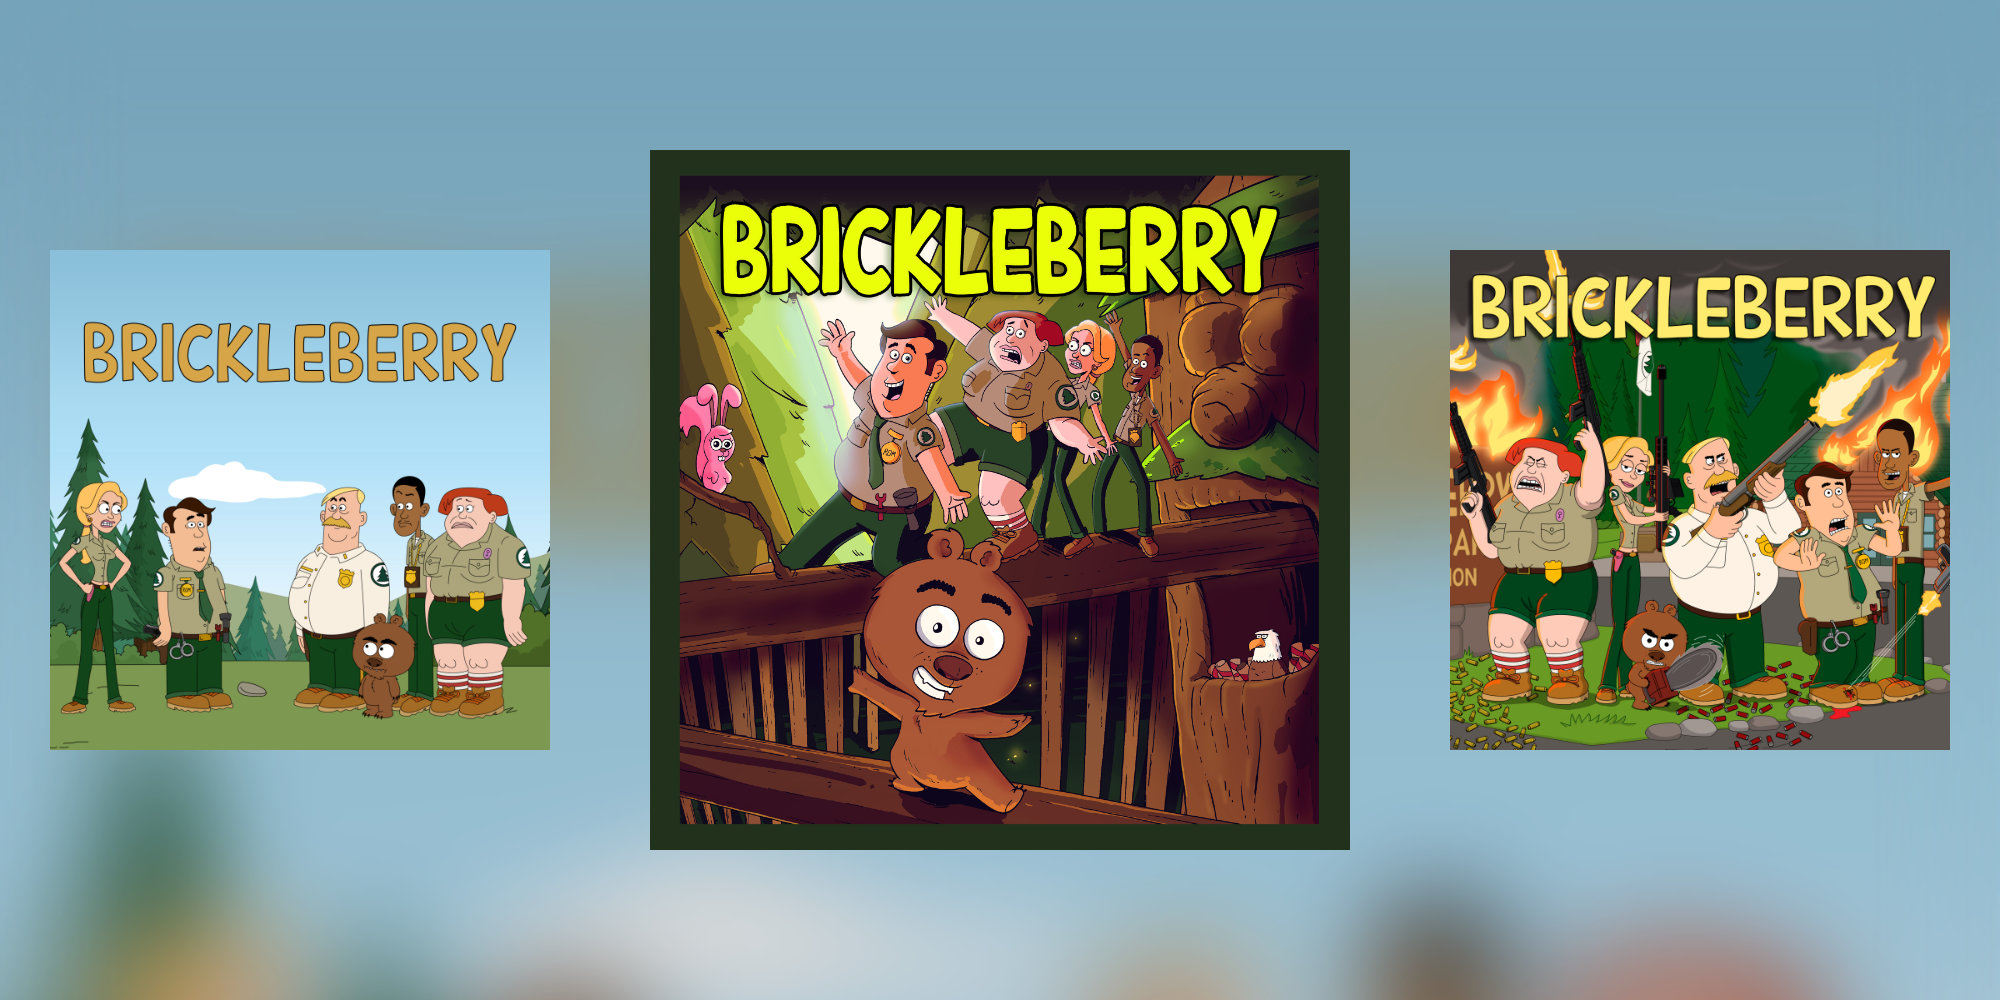 Dysfunctional comedy is on deck w/ Brickleberry Seasons 1-3 for $3 each (up to 60% off)